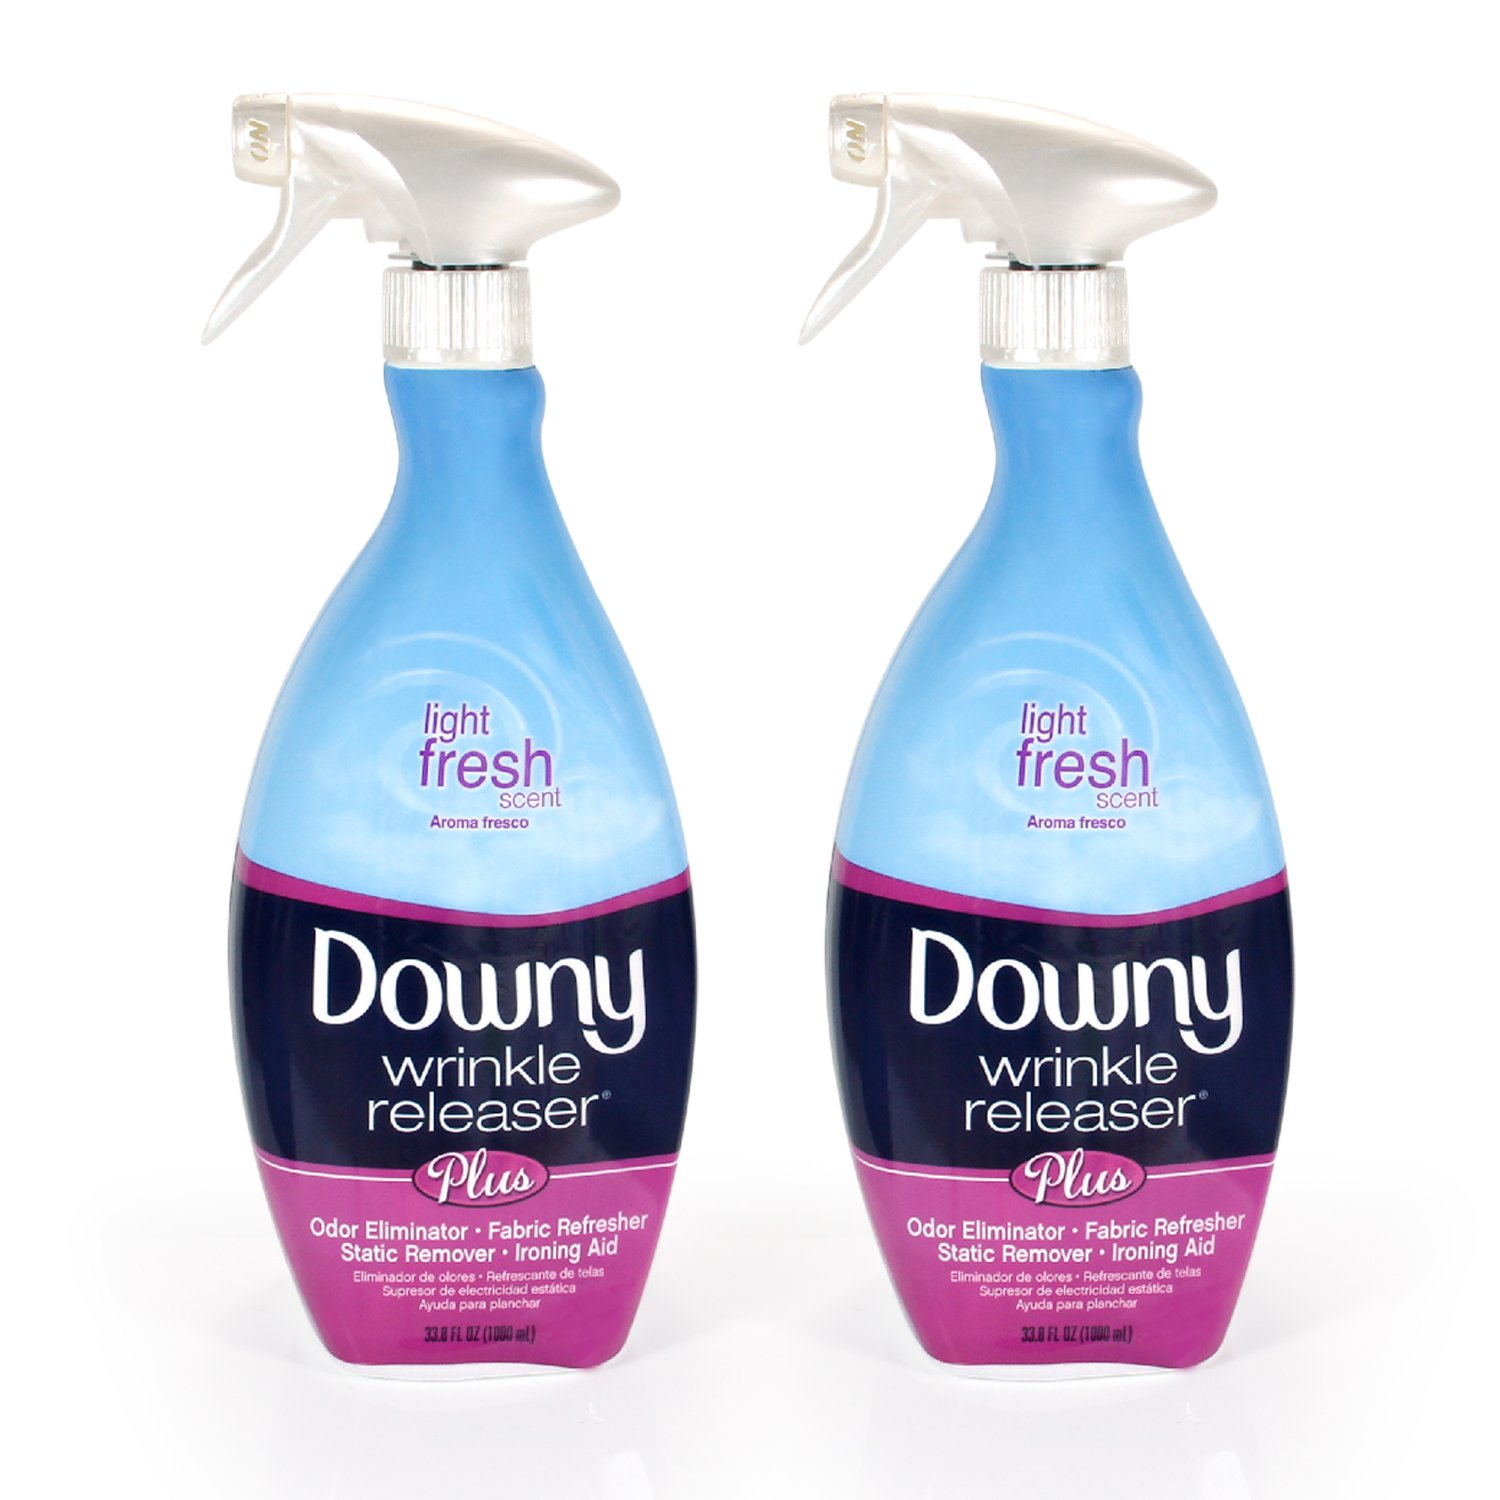 Downy Wrinkle Release Spray Plus, Static Remover, Odor Eliminator, Steamer for Clothes Accessory, Fabric Refresher and Ironing Aid, Light Fresh Scent, 33.8 Fluid Ounce (Pack of 2) by Downy